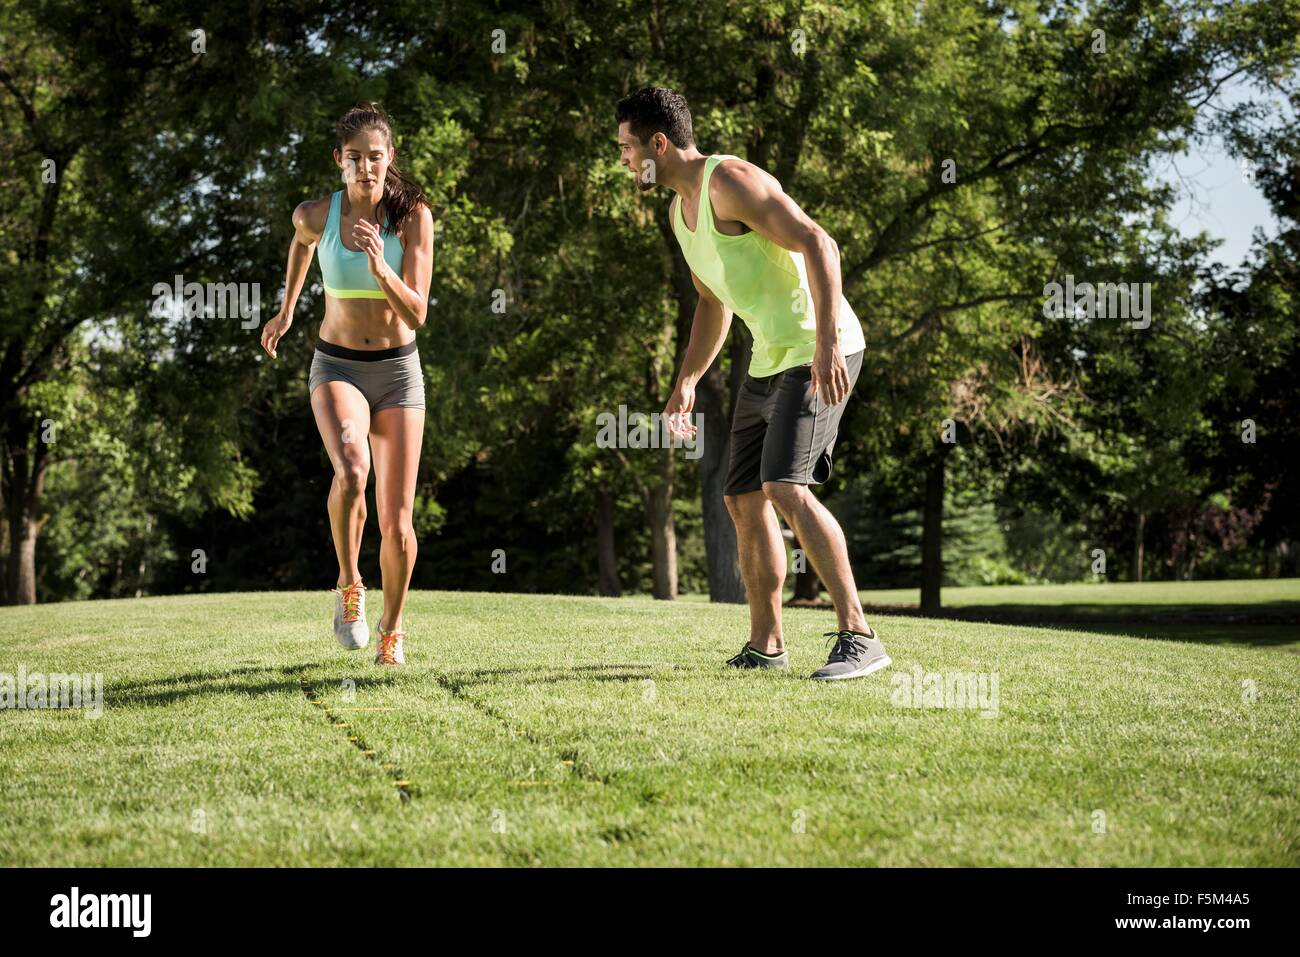 Young woman and teammate training with agility ladder in park - Stock Image